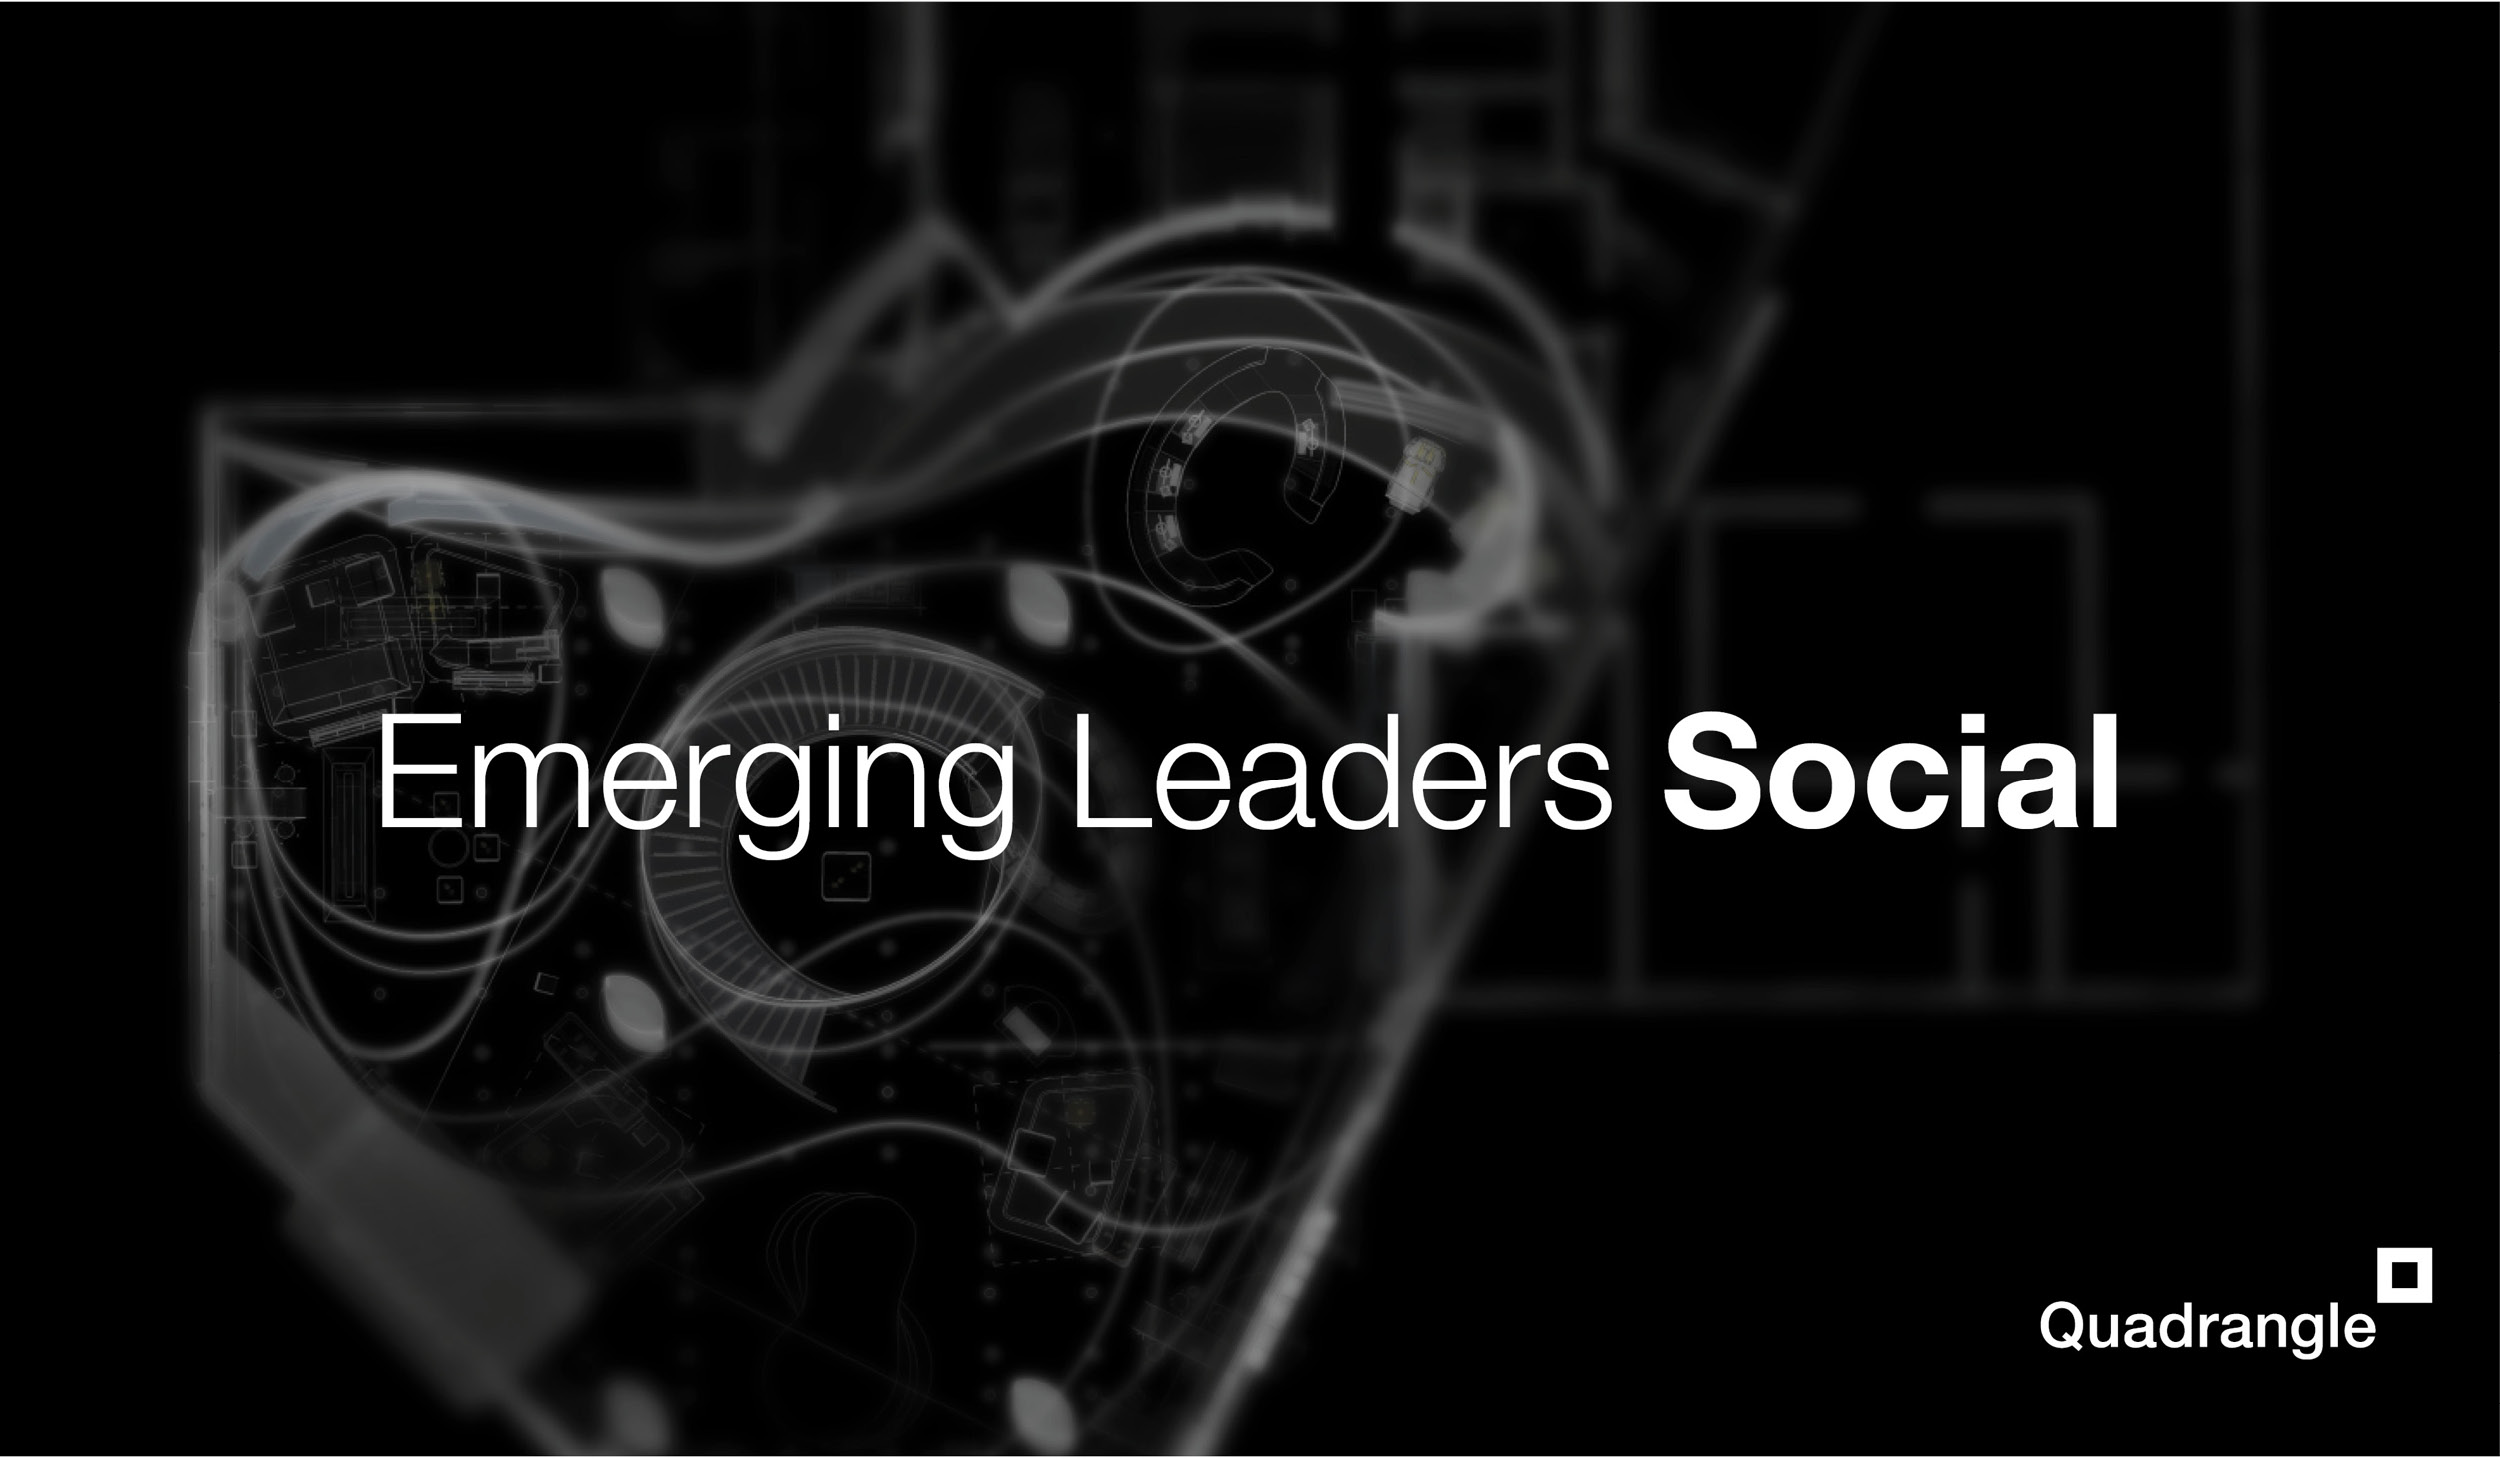 Quadrangle logo and the words Emerging Leaders Social on a black background with a concept drawing of the Samsung Experience Store